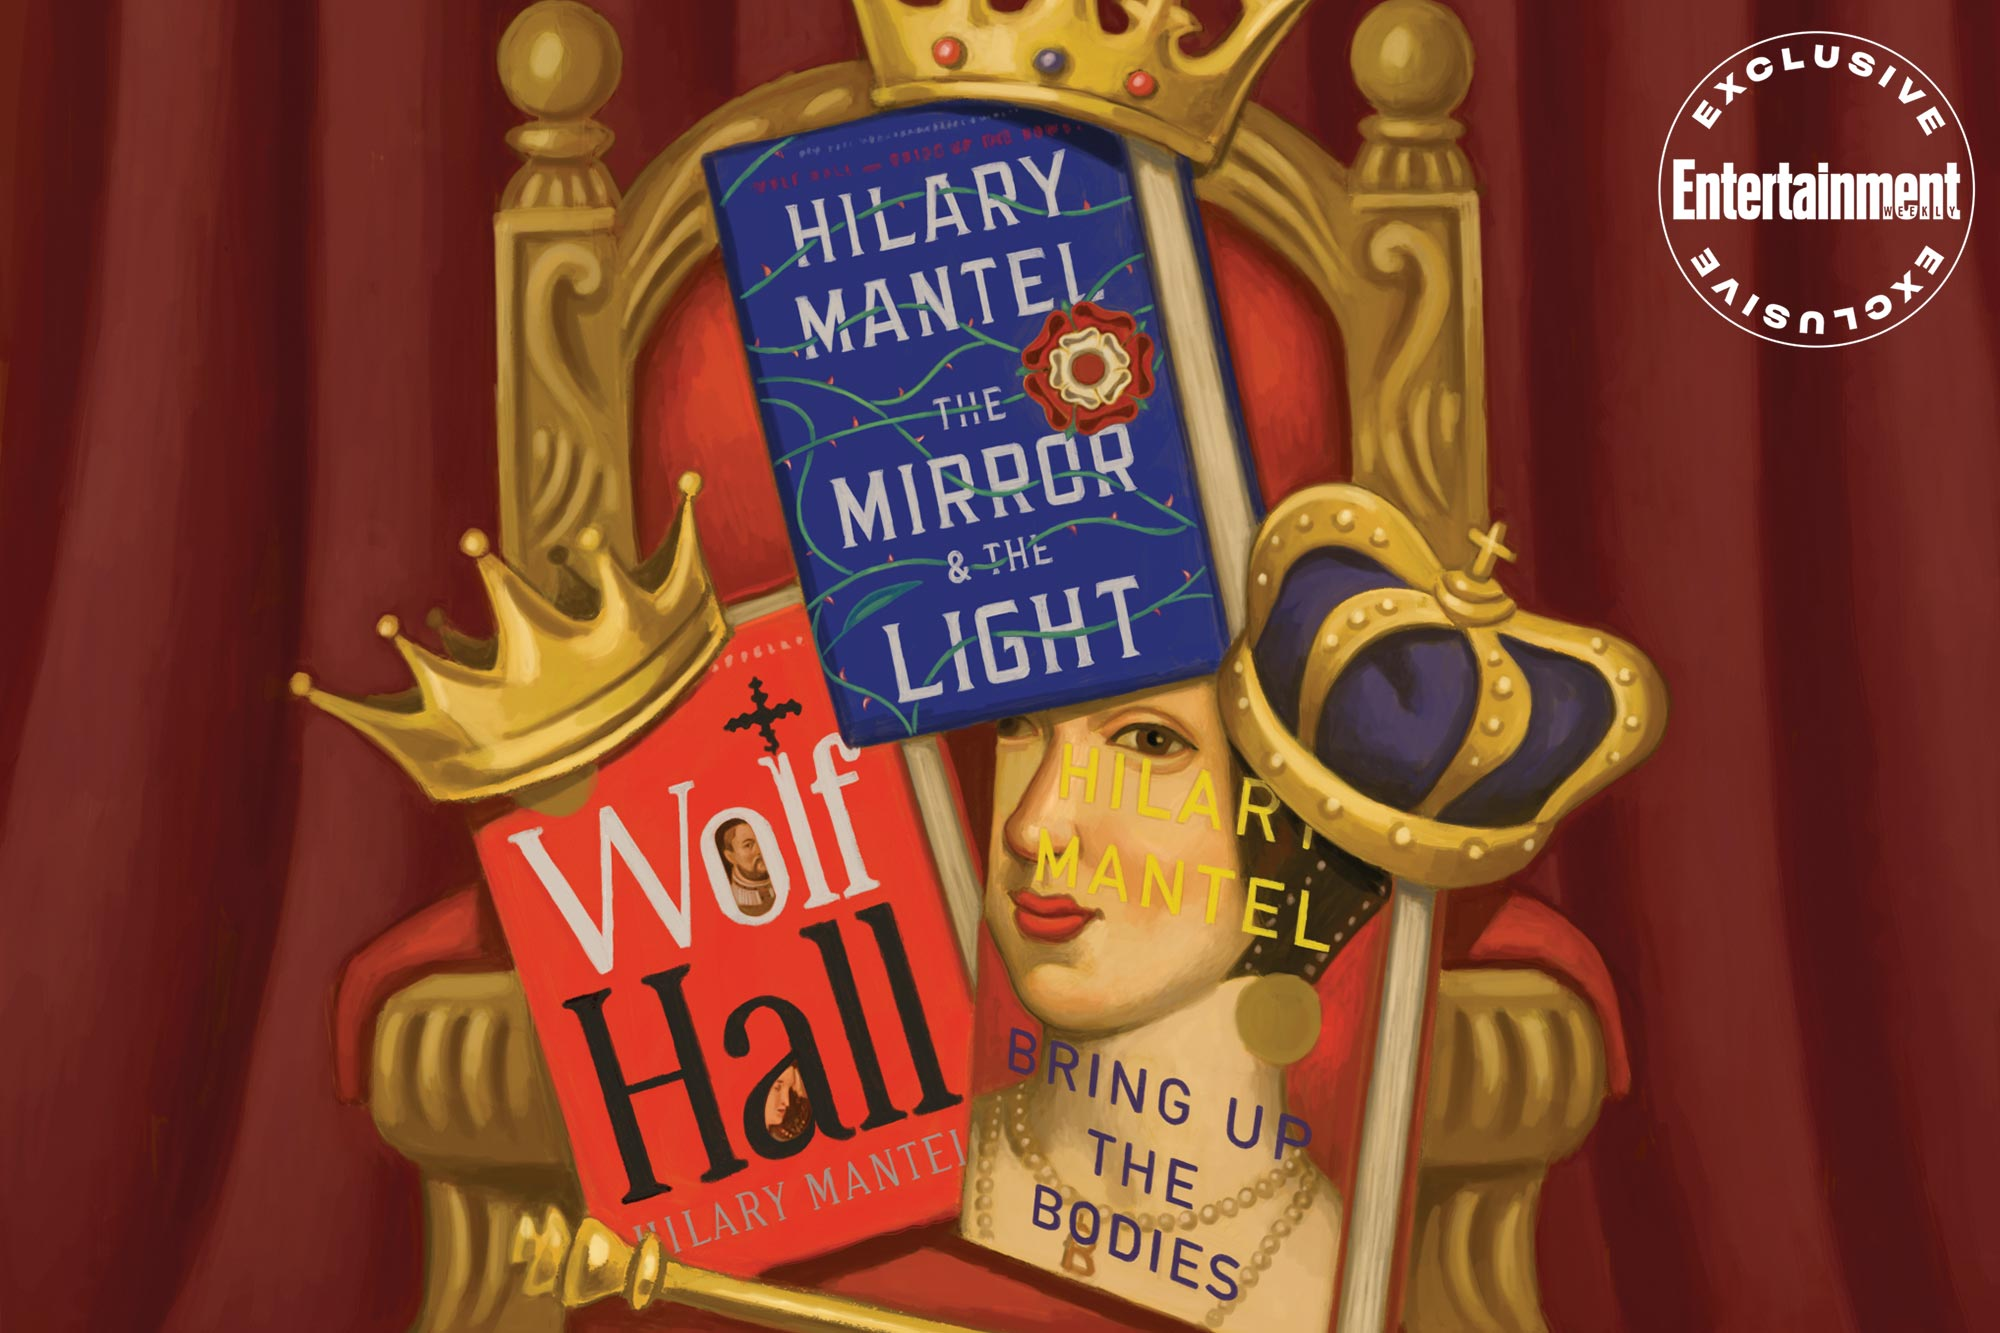 Wolf Hall Books by Hilary Mantel